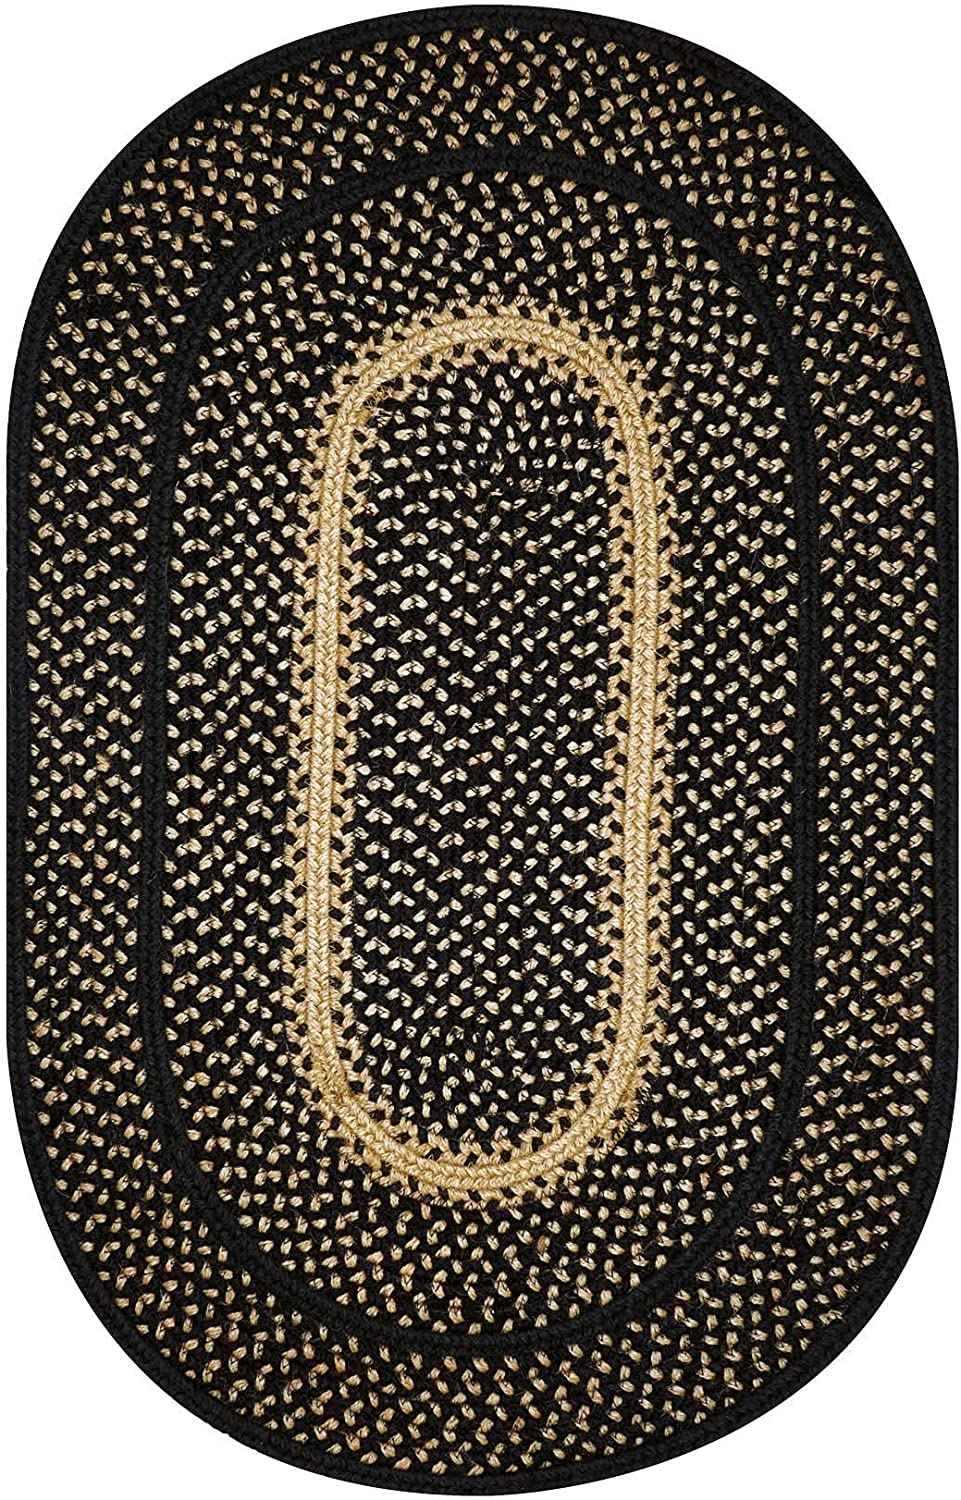 Manchester Premium Jute Braided Area Rug by Homespice, 20 x 30 Oval Black, Reversible, Natural Jute Yarn Rustic, Country, Primitive, Farmhouse Style - 30 Day Risk Free Purchase